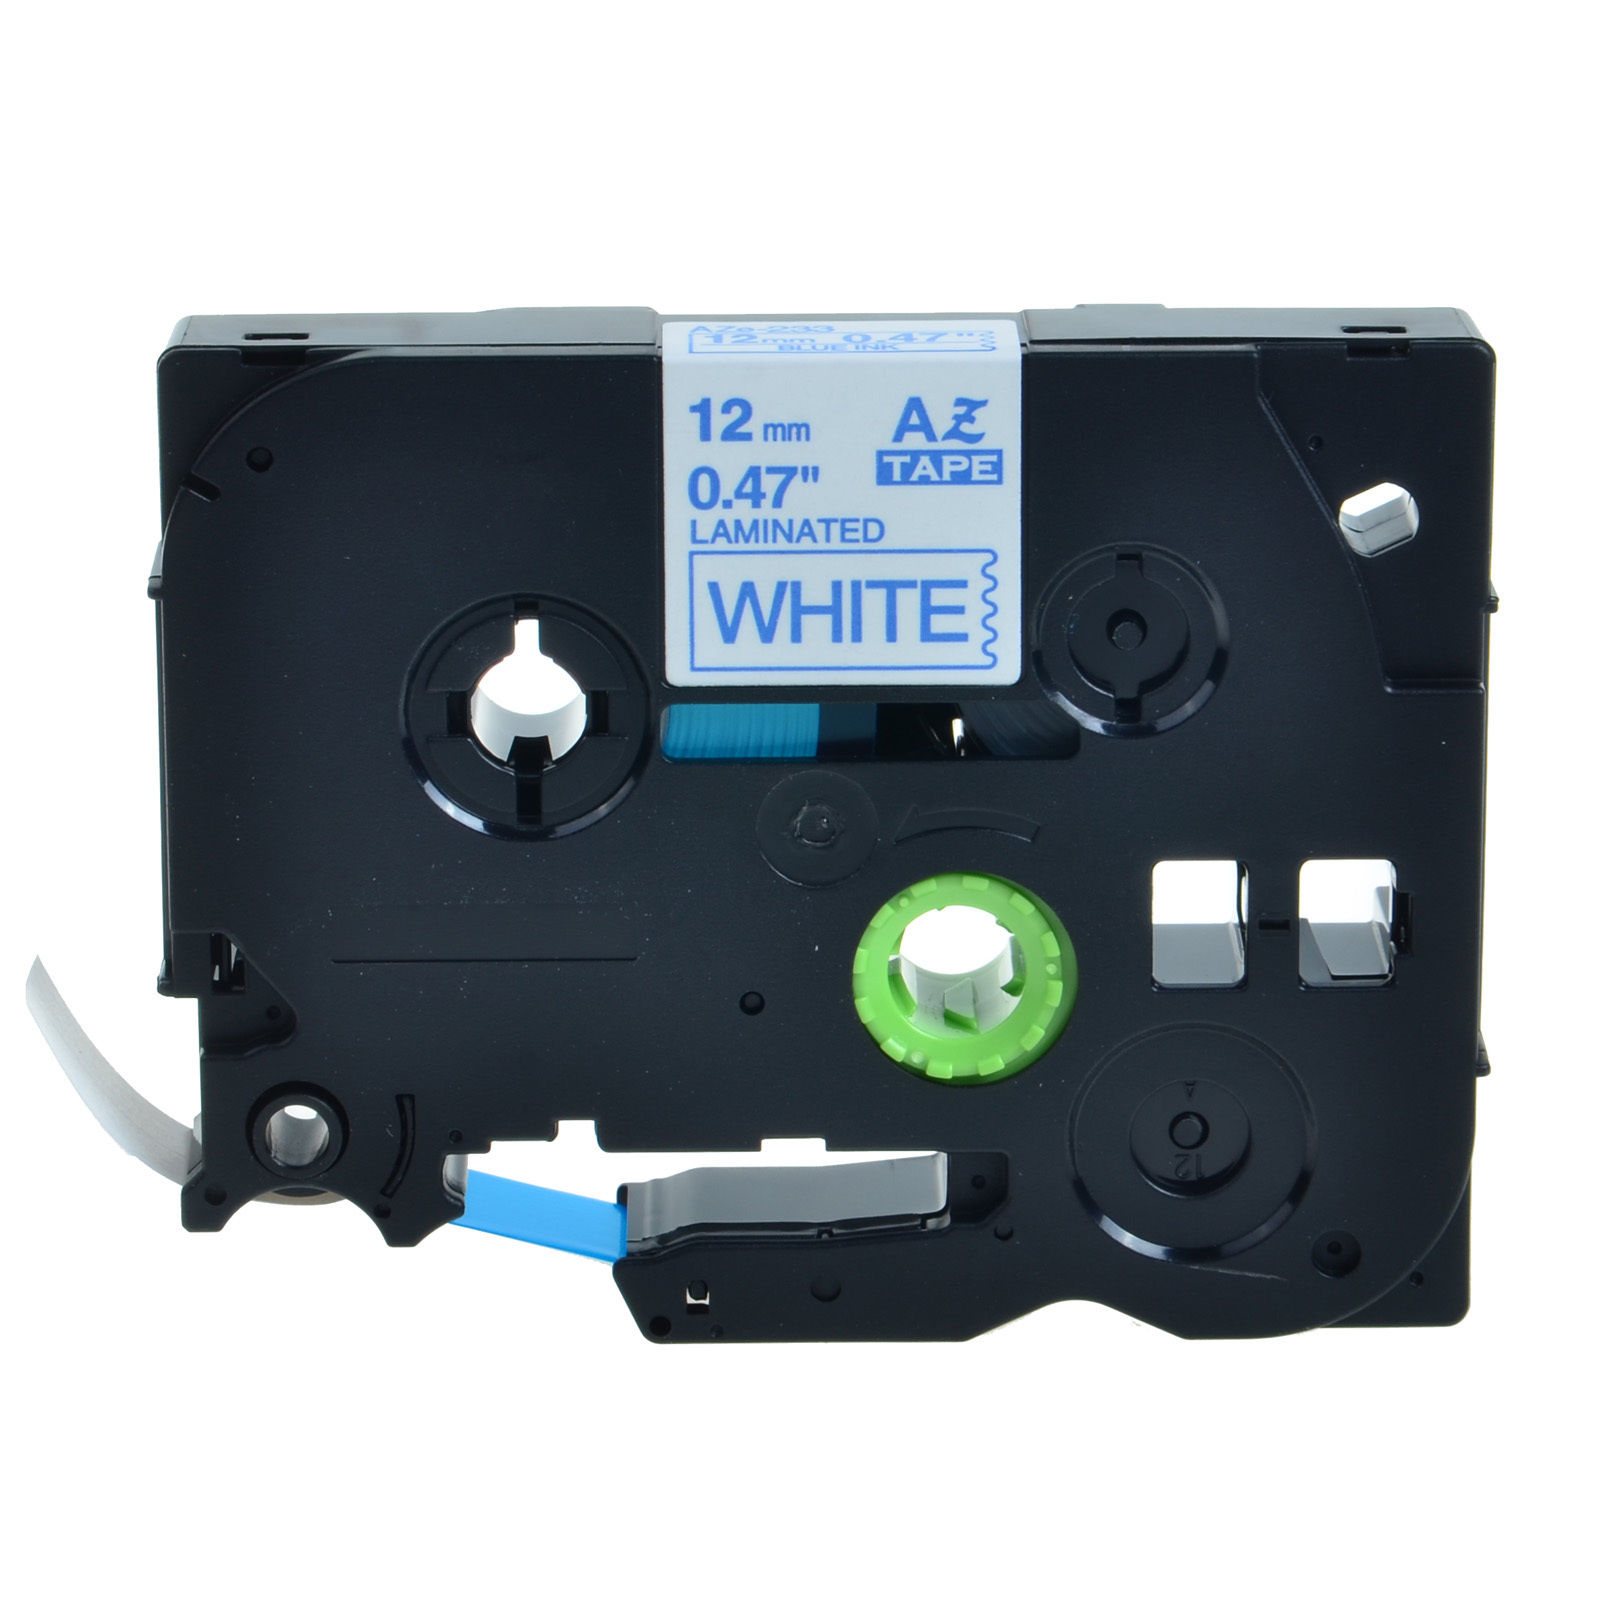 2 Packs 12mm TZ233 TZe233 Blue on White Label Tape for Brother P-Touch 0.47inch